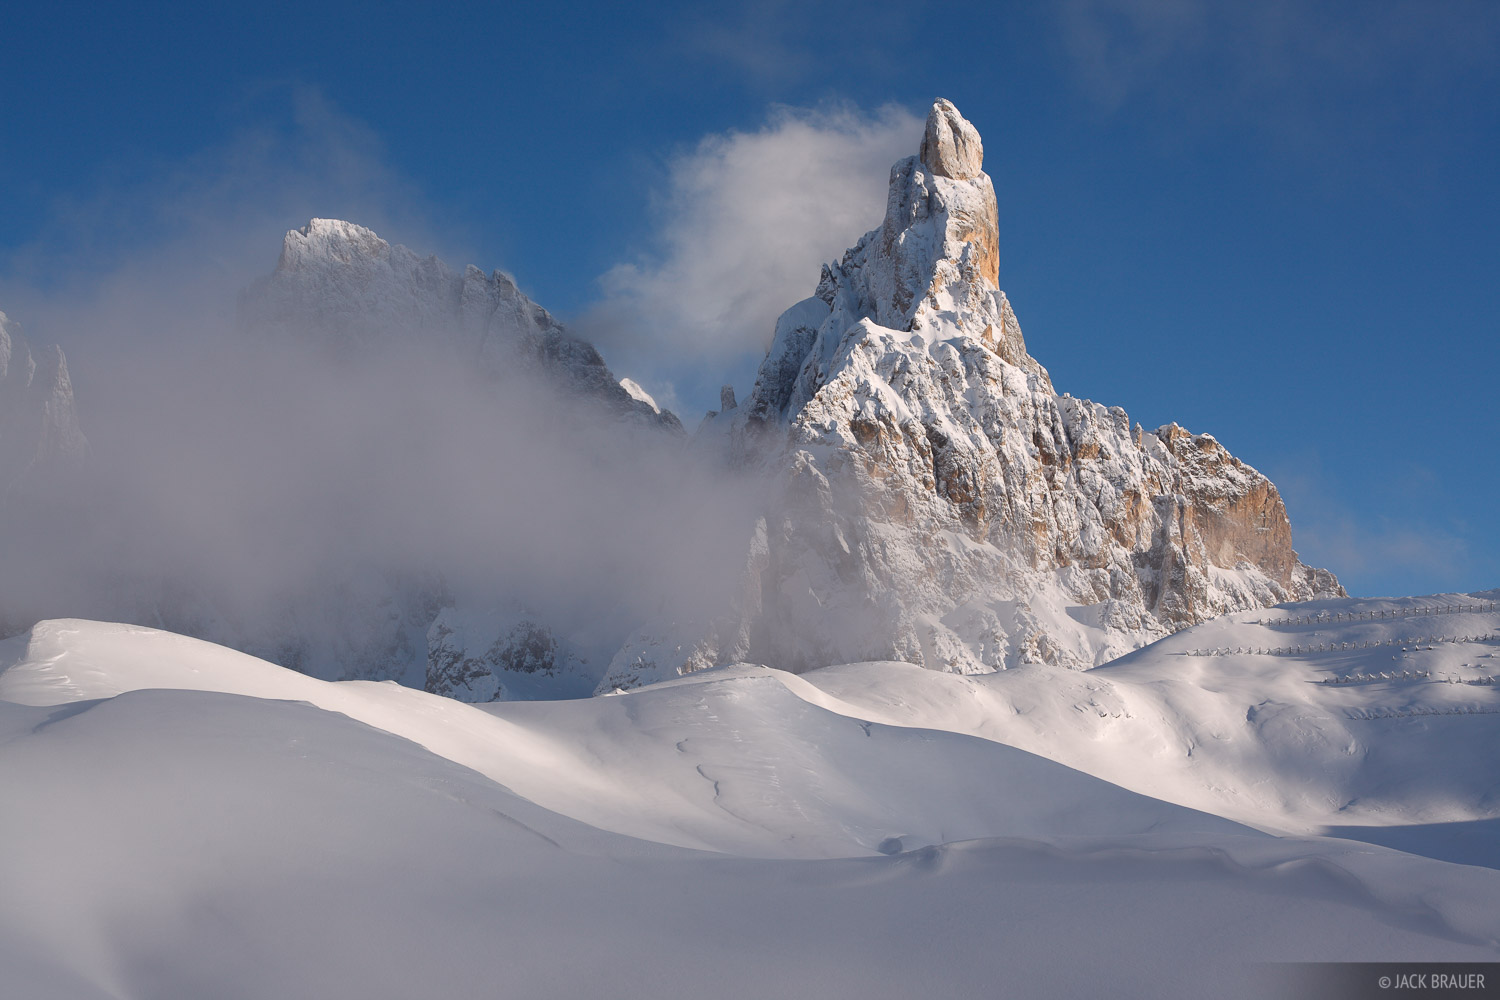 Cimon della Pala, snowy, Dolomites, Italy, December, Alps, photo